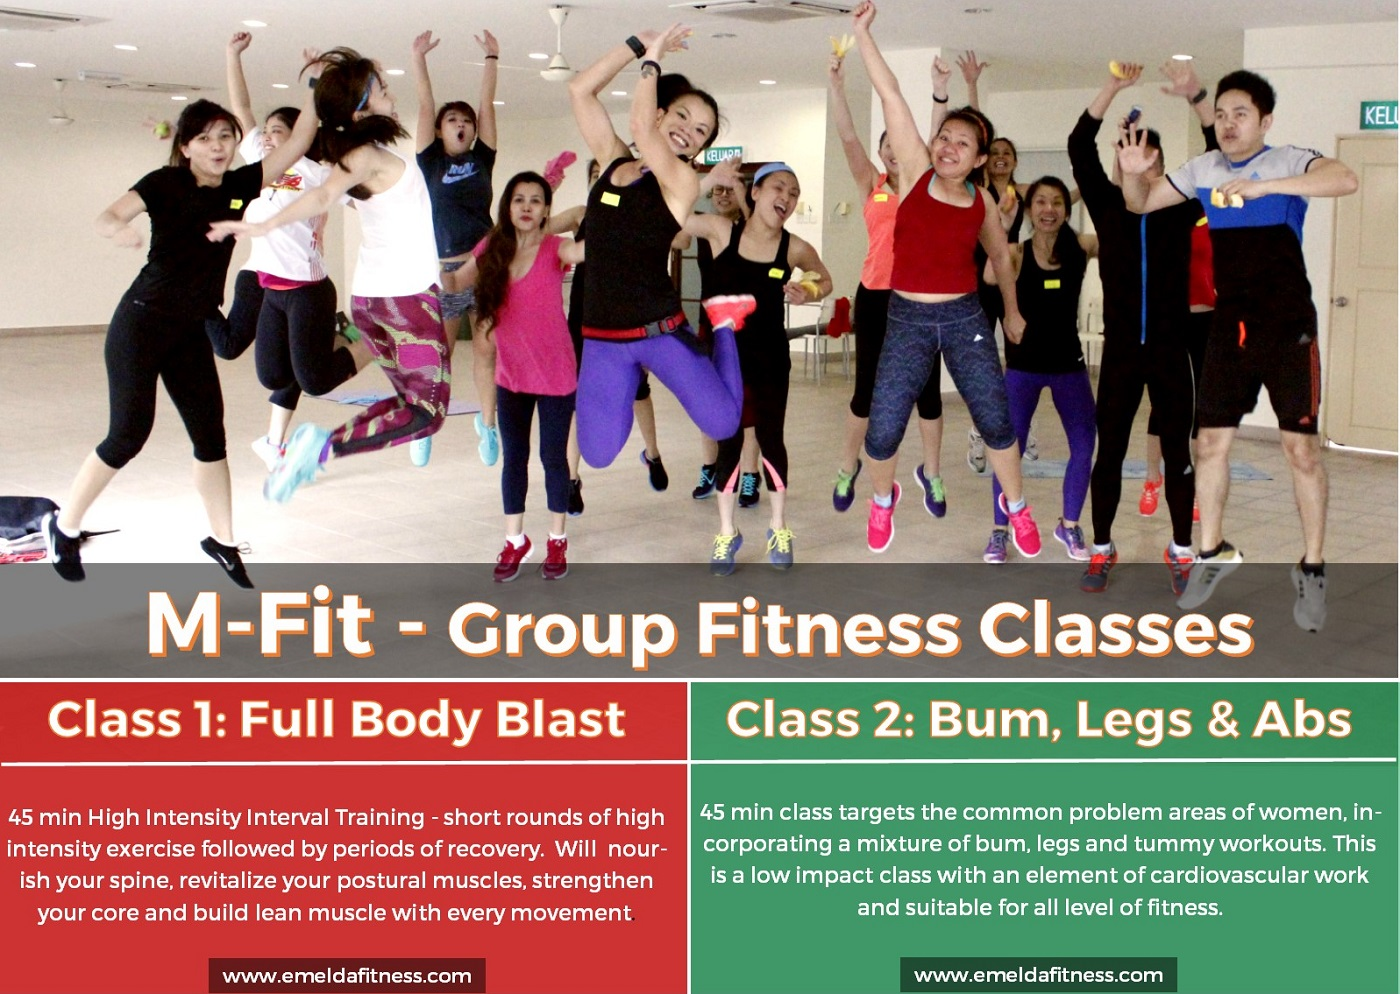 M-Fit Group Fitness Class